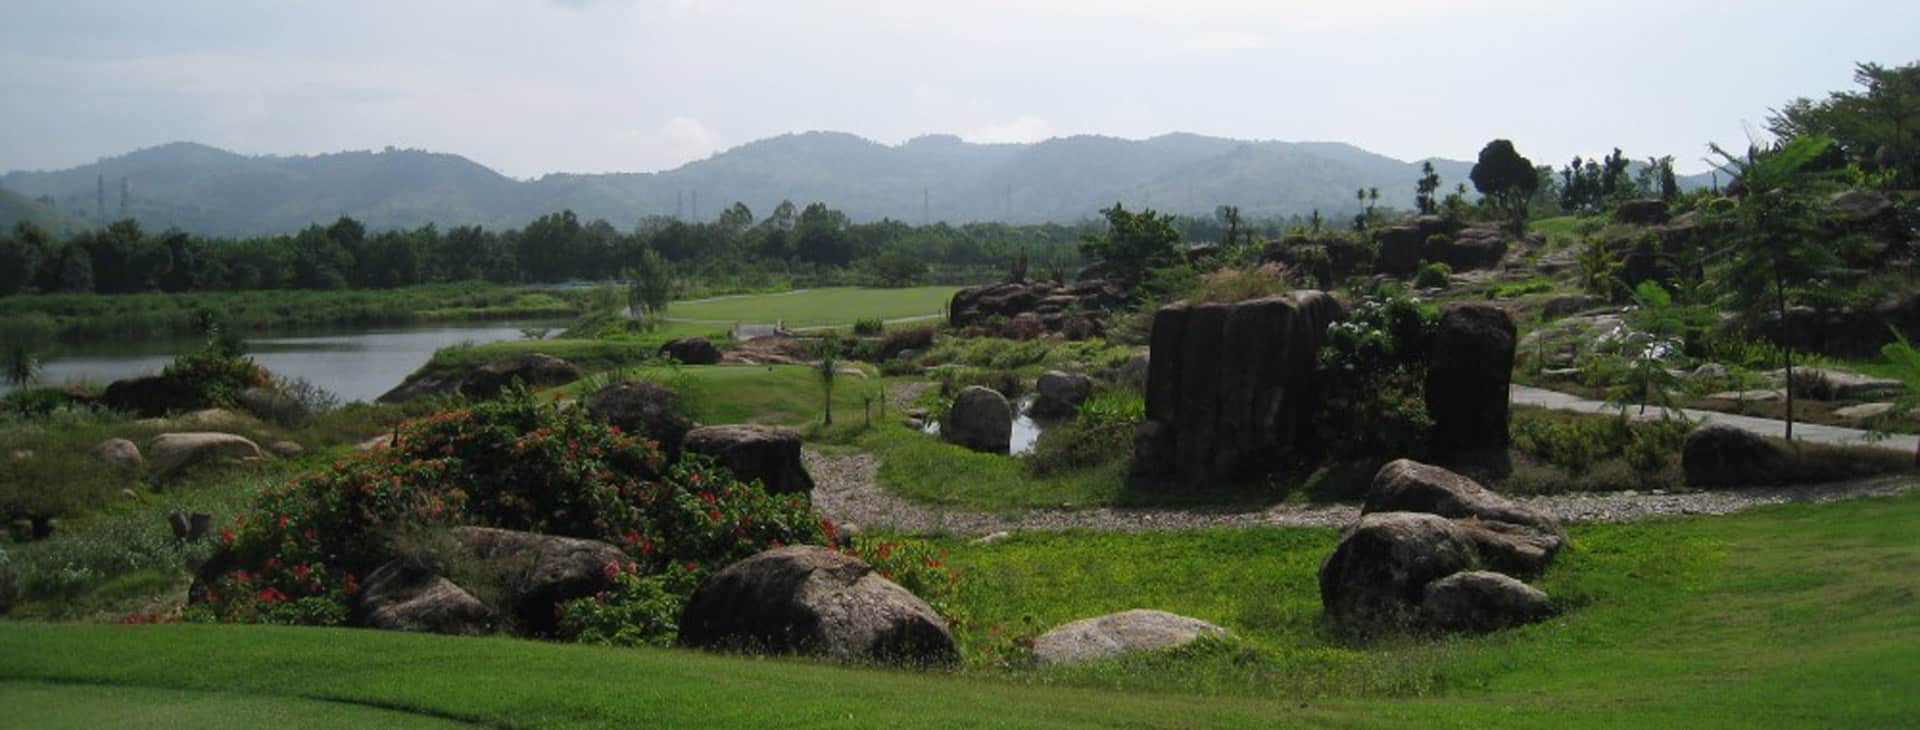 Golf Thailand_Golf Courses_Pattaya_St Andrews 2000 Golf Club